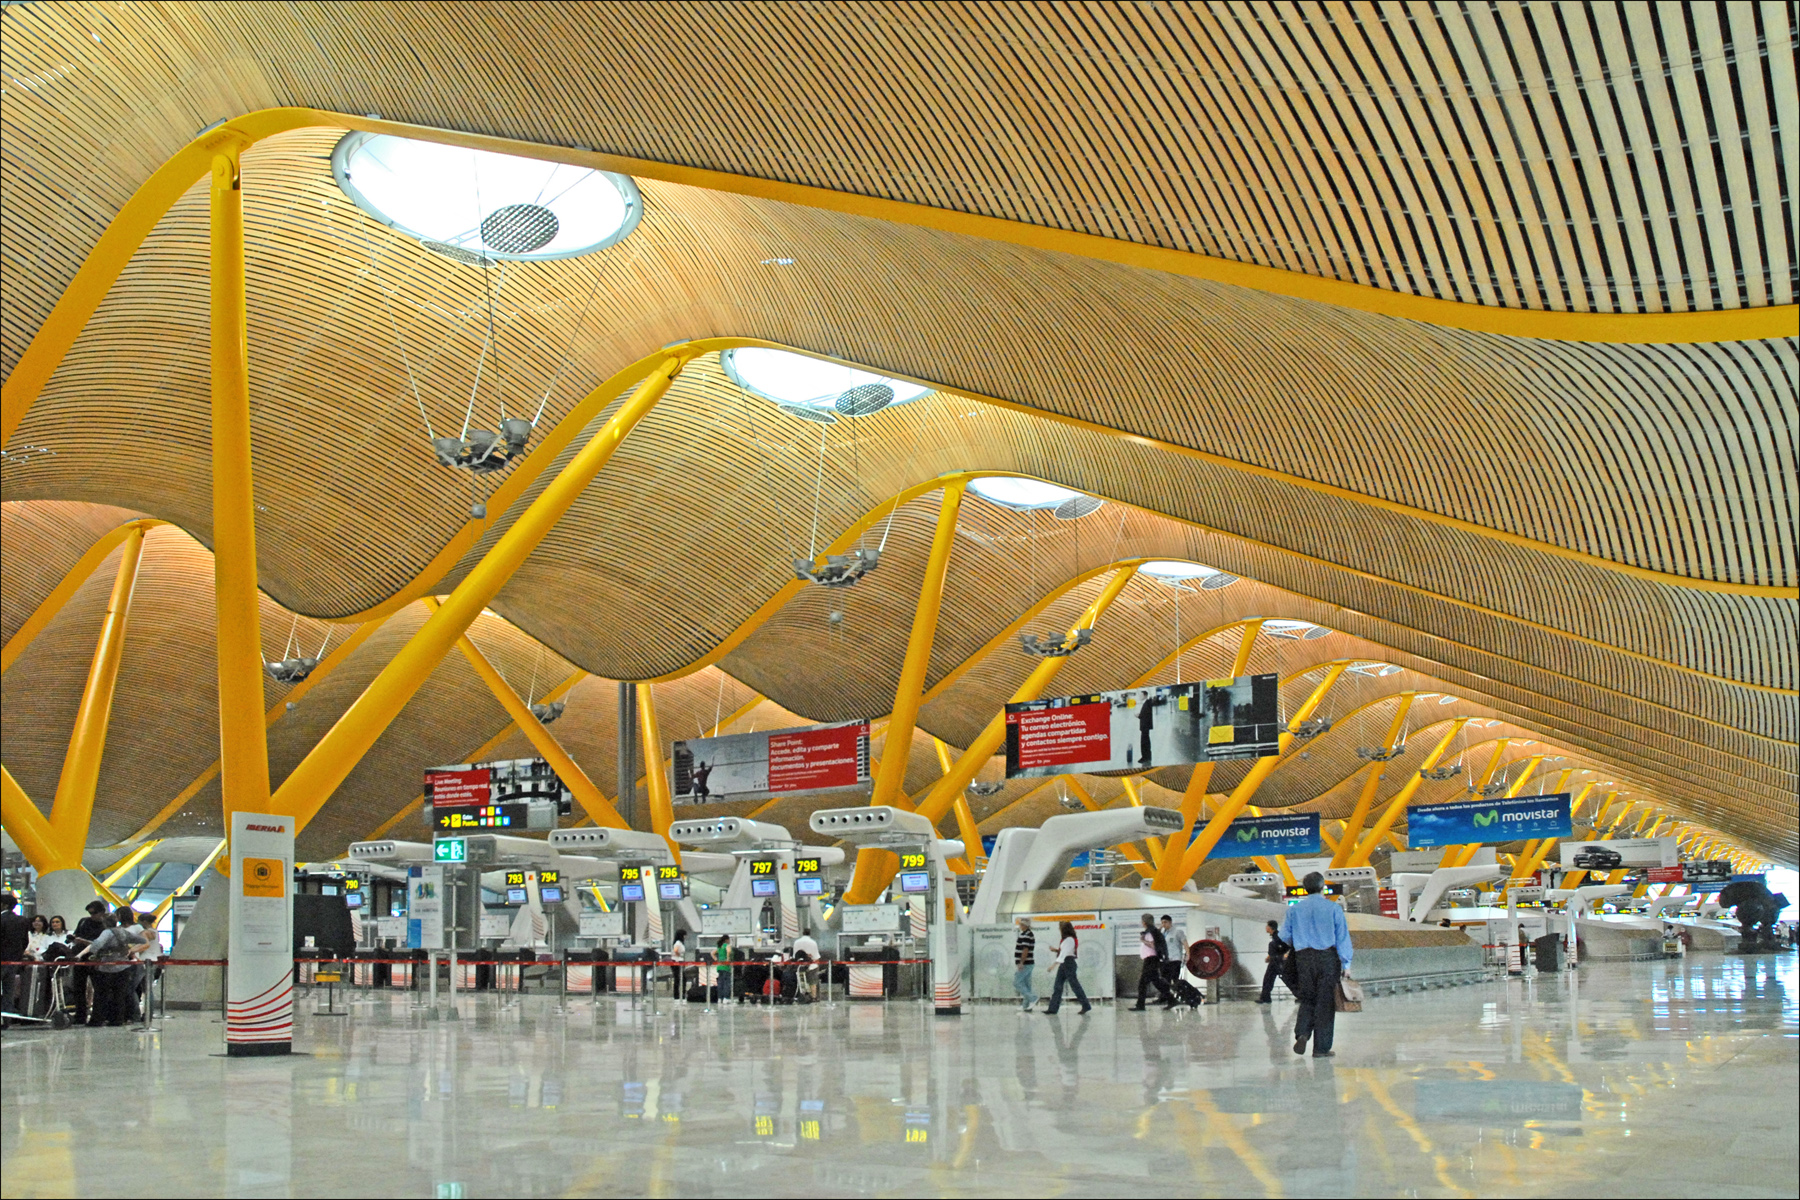 Adolfo Suárez Madrid–Barajas Airport, Madrid, Spain